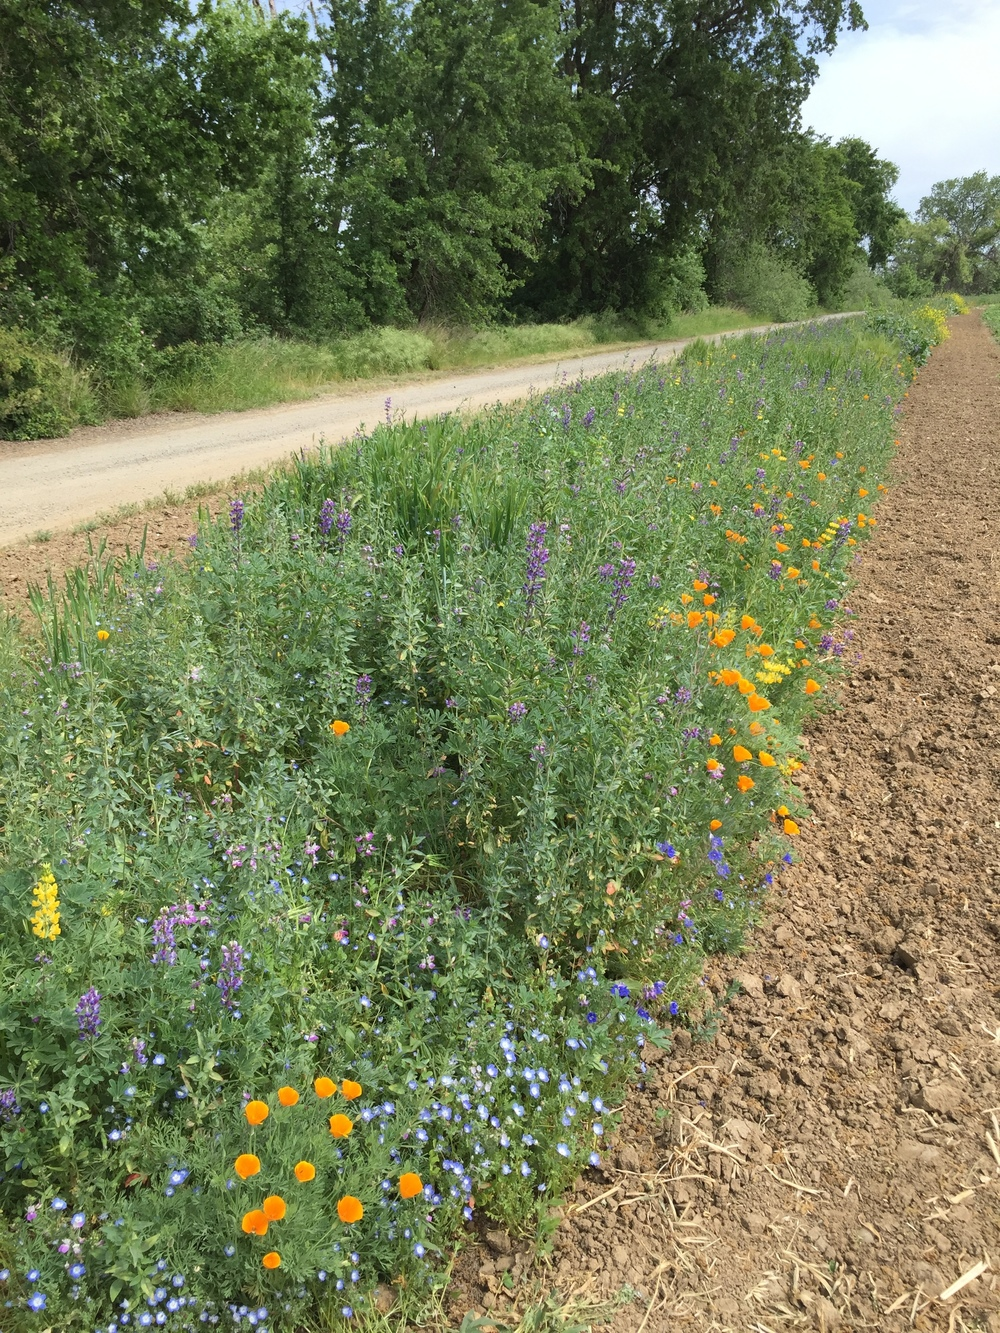 I've yet to get a photo that captures the beauty and magnitude of the pollinator strip.